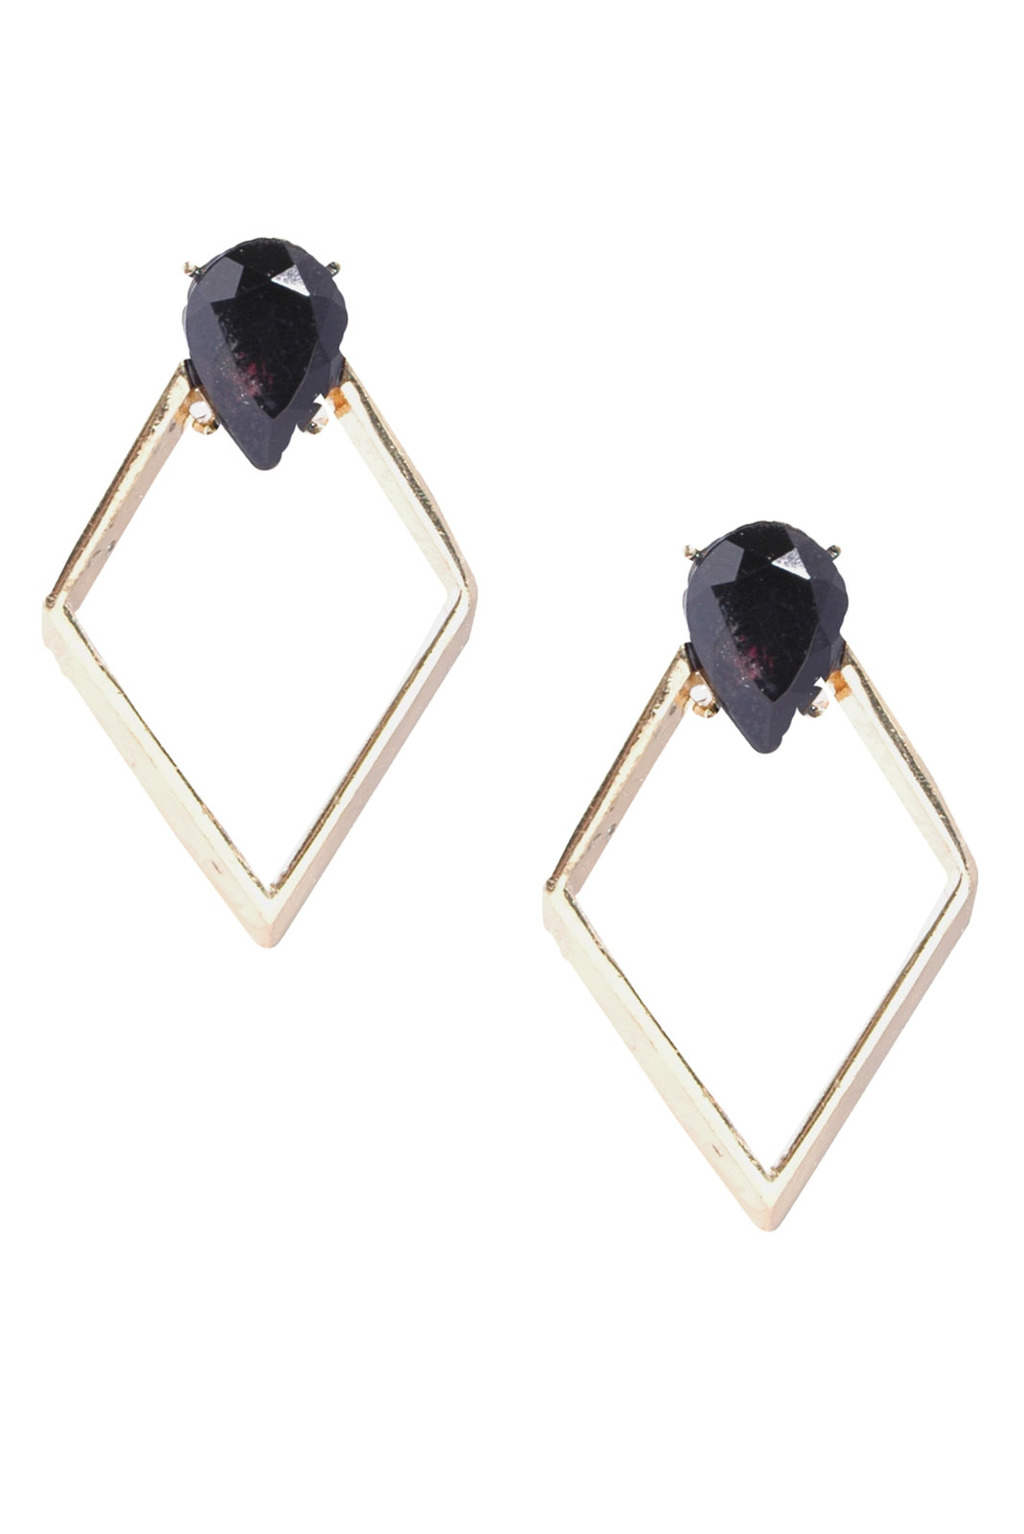 Black & Geometric Drop Earrings - predominant colour: gold; occasions: evening, work, occasion; style: drop; length: long; size: standard; material: chain/metal; fastening: pierced; finish: plain; embellishment: crystals/glass; season: s/s 2013